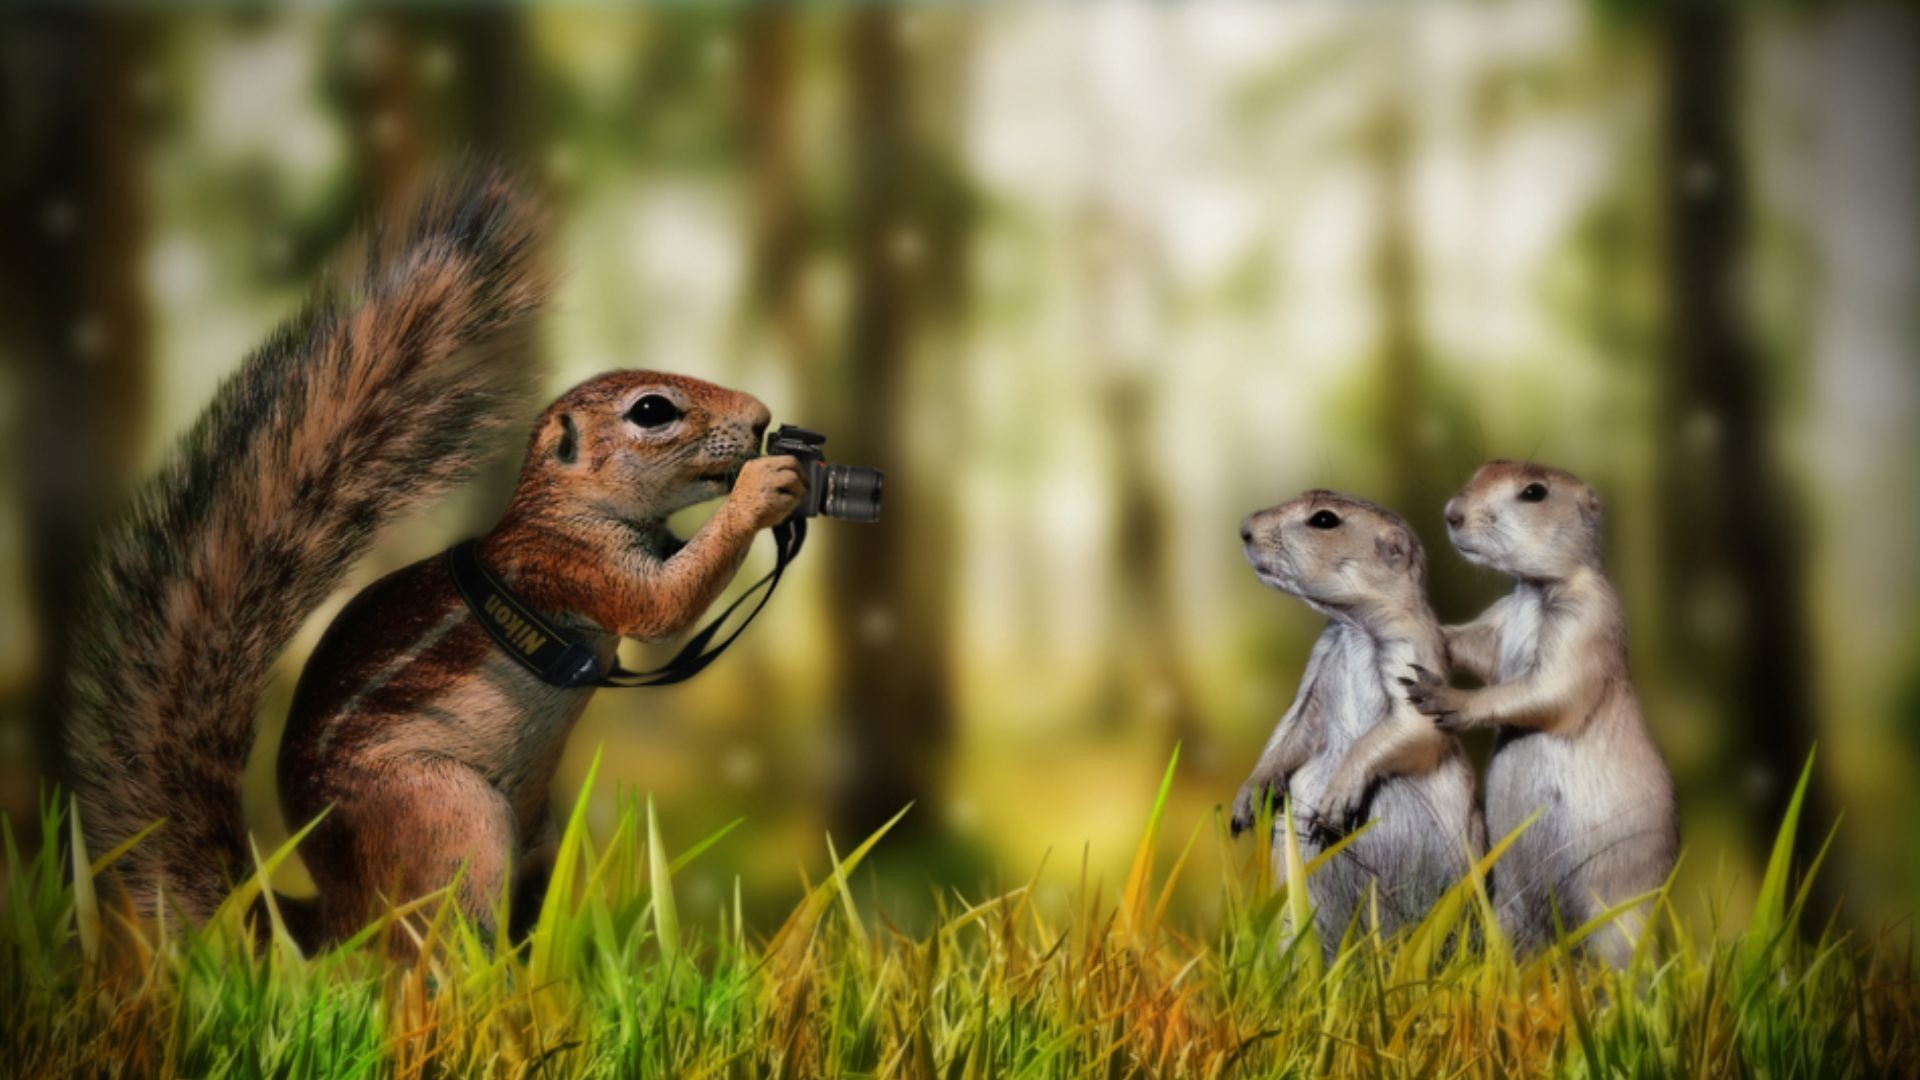 Animals-Funny-Backgrounds-http-wallawy-com-animals-funny-backgrounds-wallpaper-wp3402422